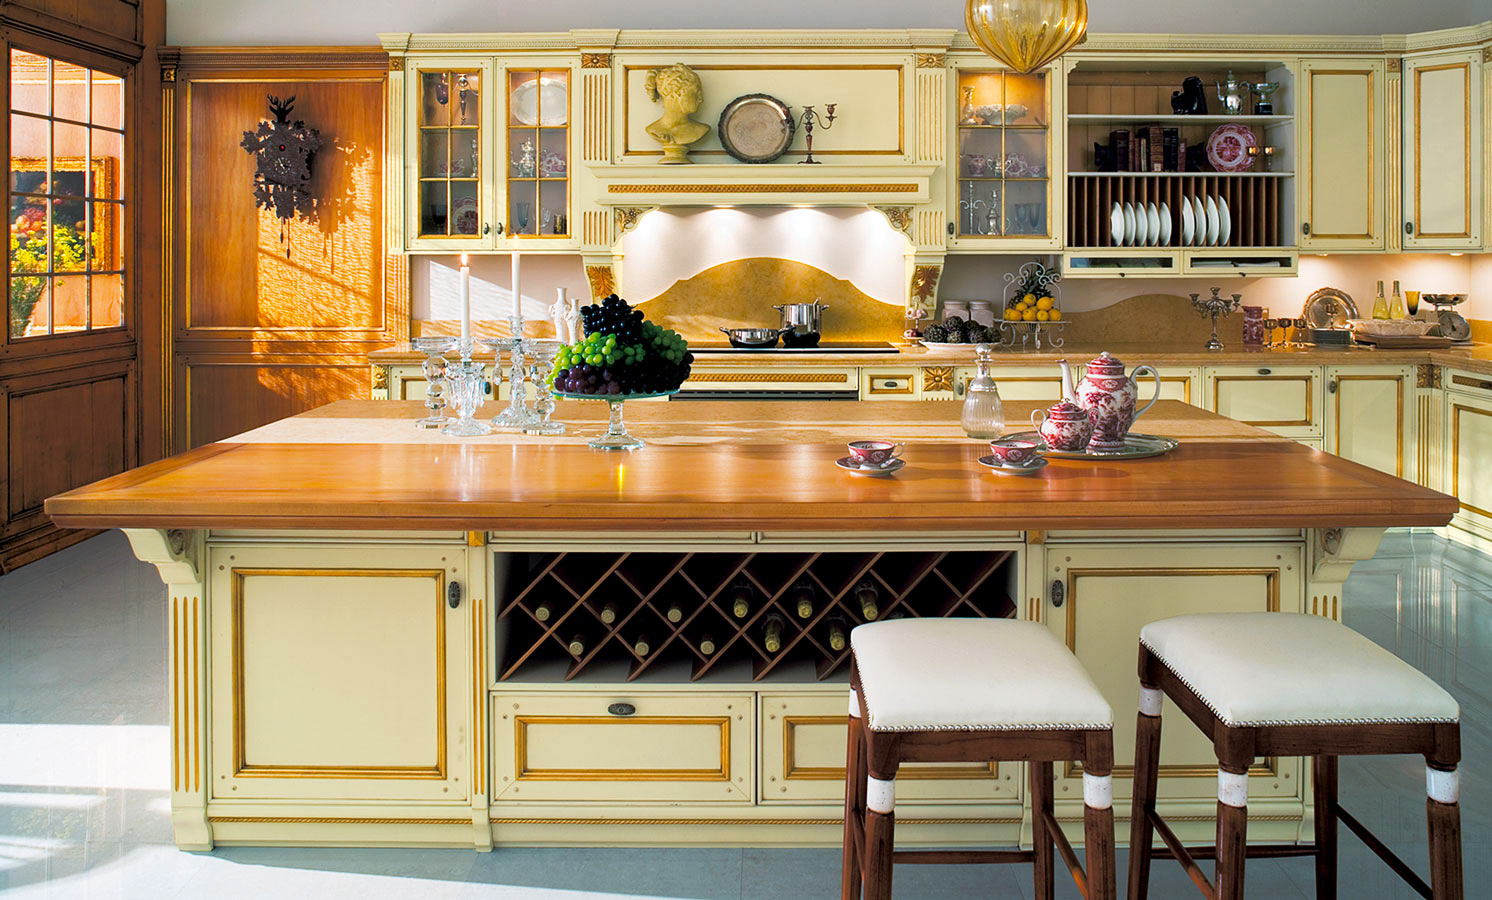 astonishing-cream-color-wooden-italian-kitchen-cabinets-design-rectangle-shape-kitchen-island-with-single-door-cabinets-wine-storage-rack-mounted-italian-kitchen-cabinets-with-glass-door